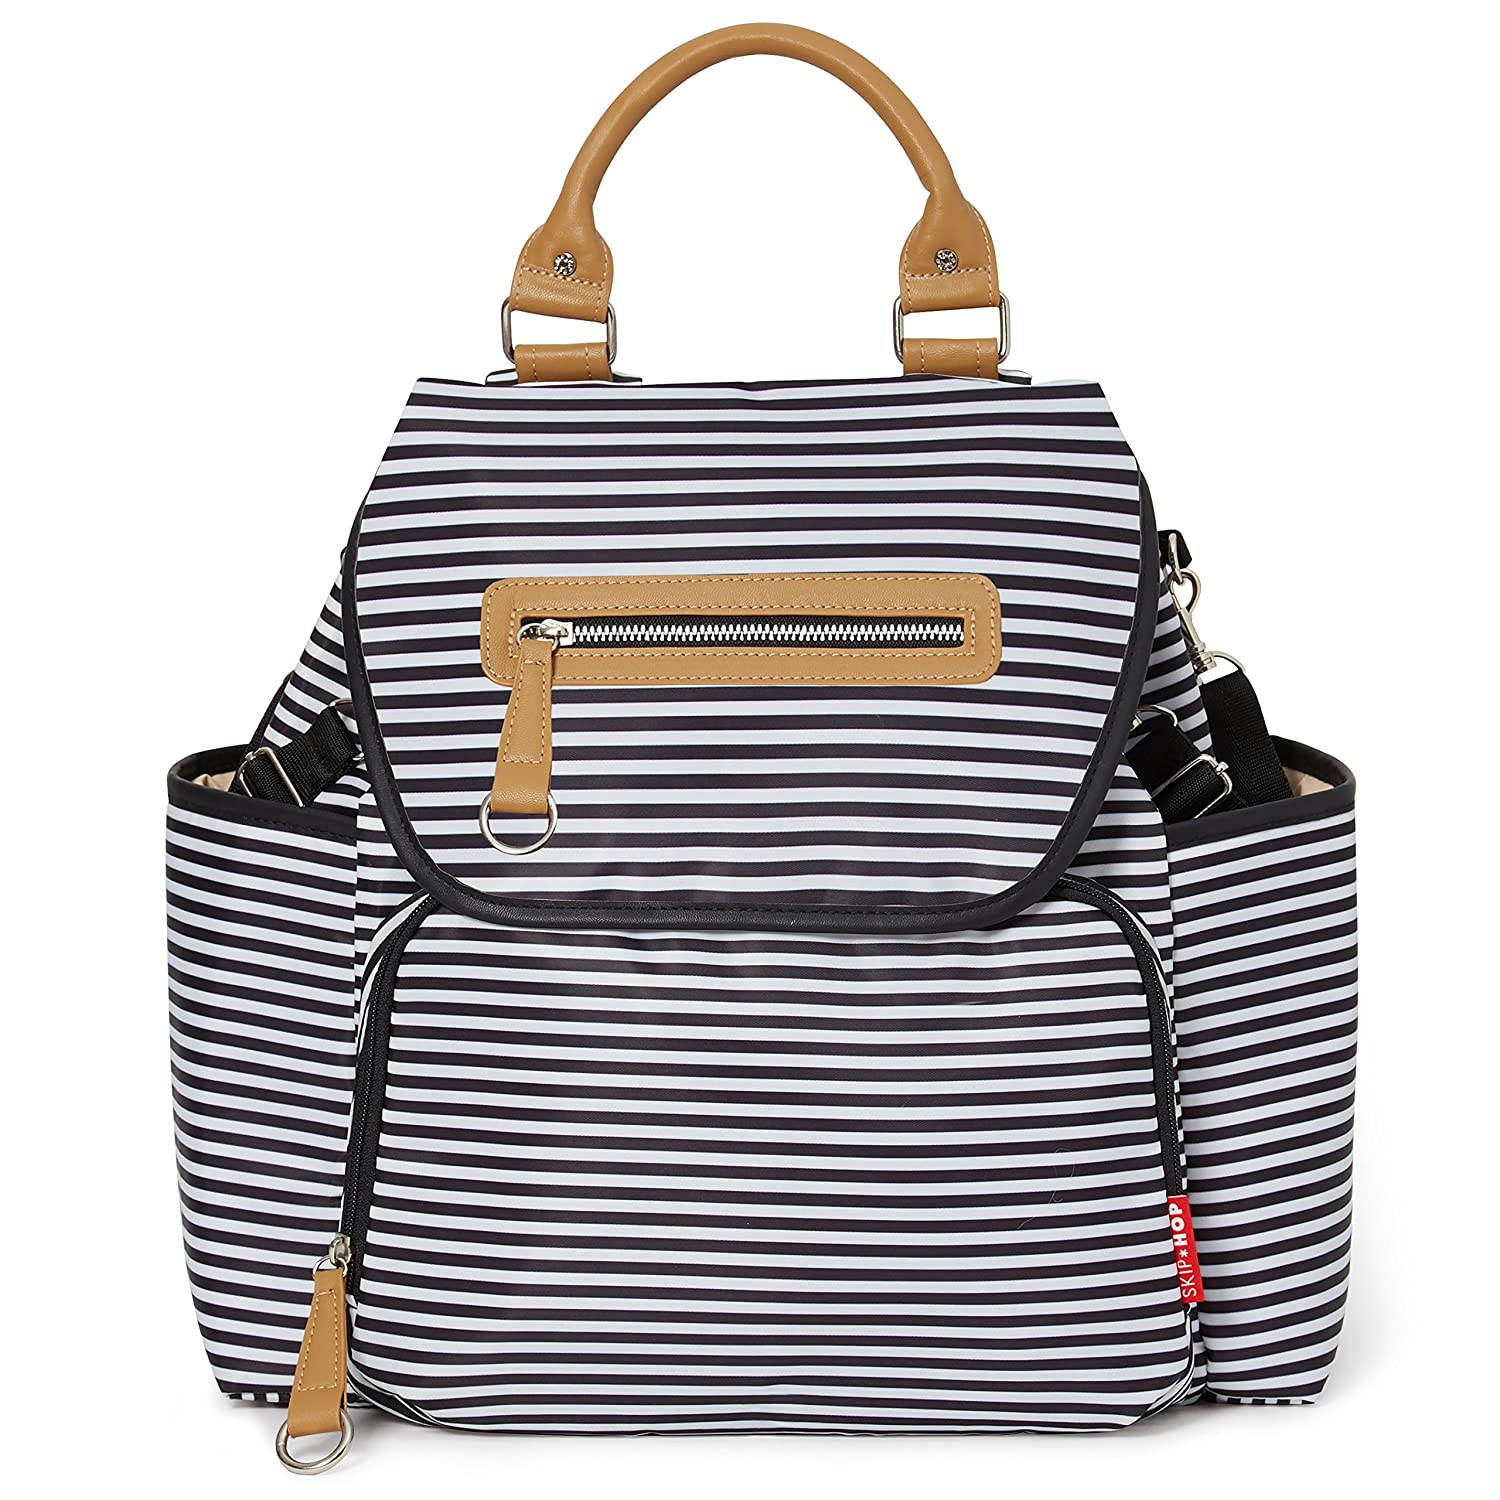 Skip Hop Diaper Bag Tote with Matching Changing Pad, Grand Central, Black & White Stripe #216101